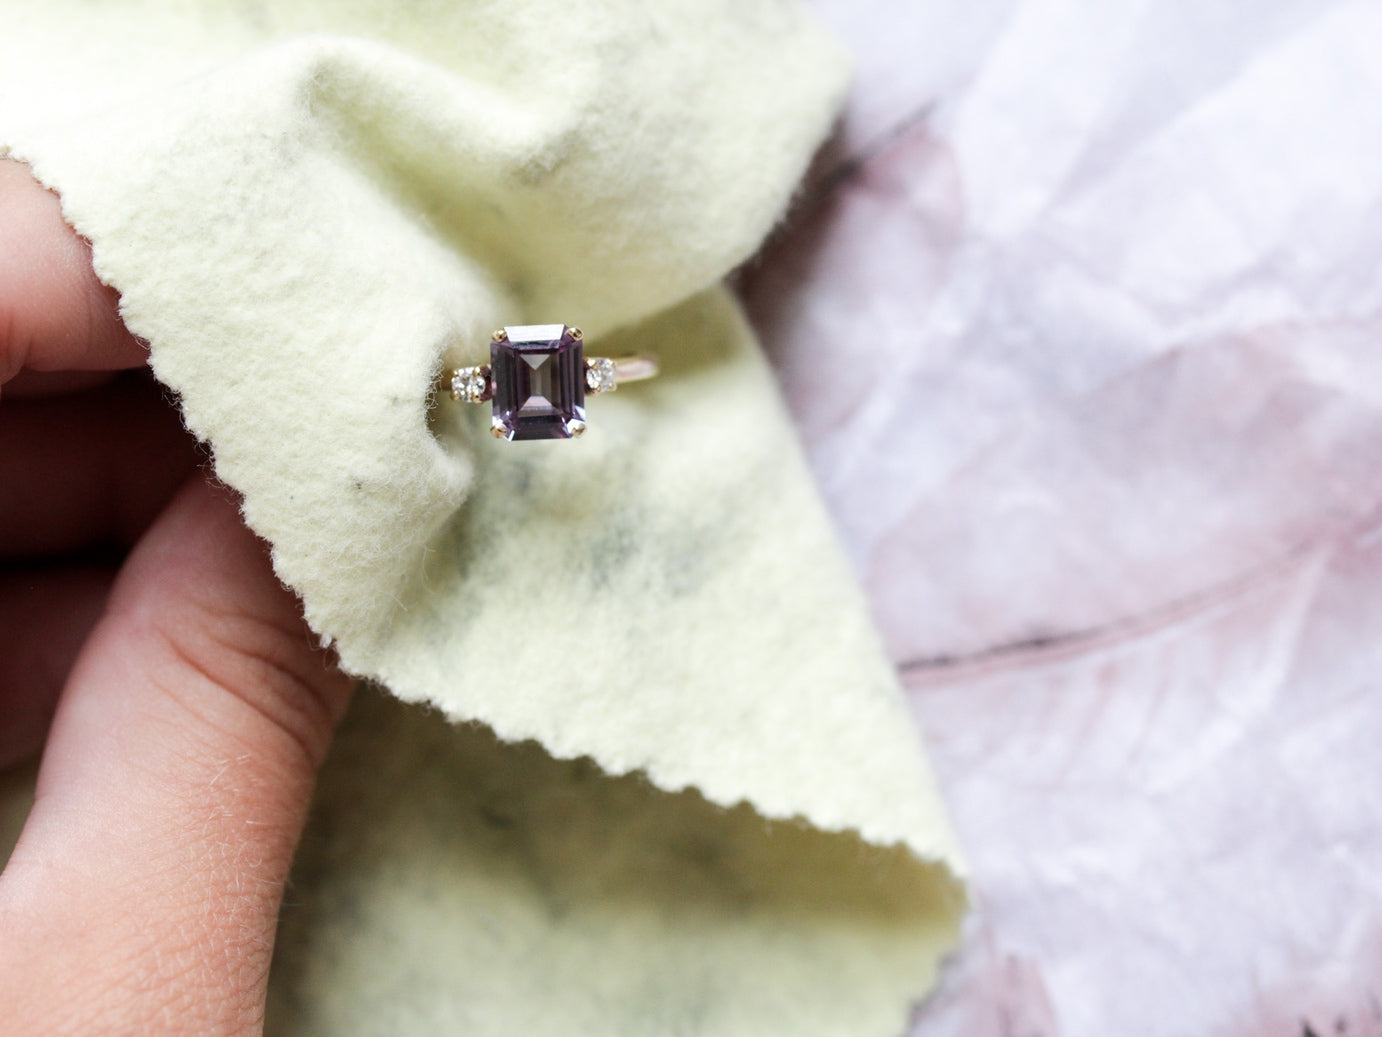 How to clean a vintage engagement ring